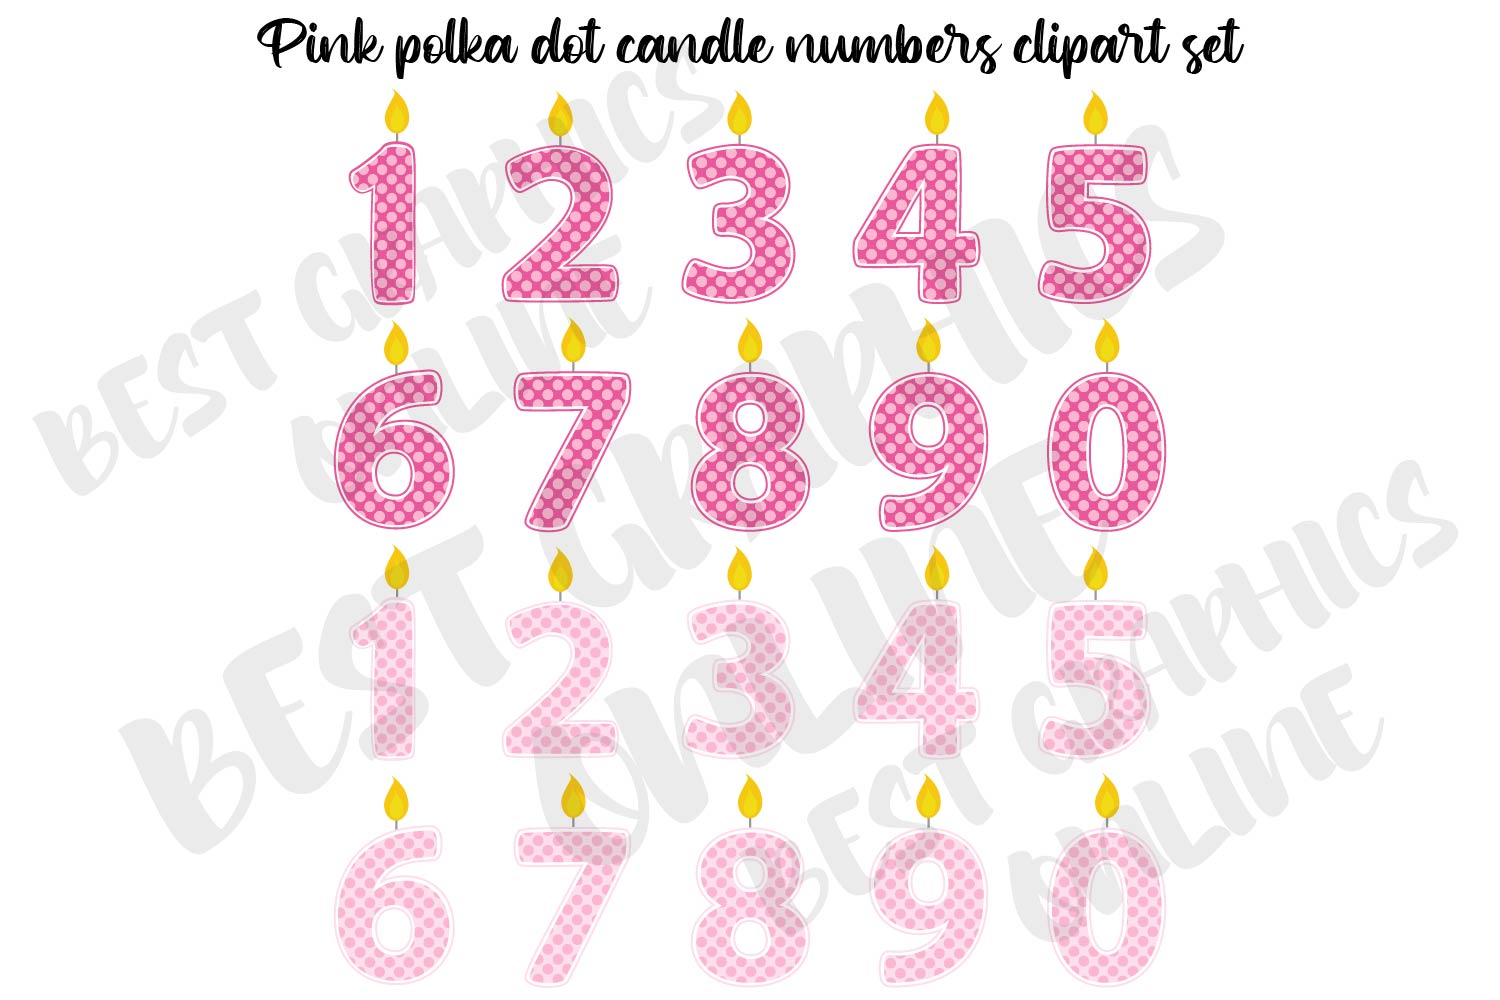 Free Number Candle Cliparts, Download Free Clip Art, Free Clip Art on  Clipart Library